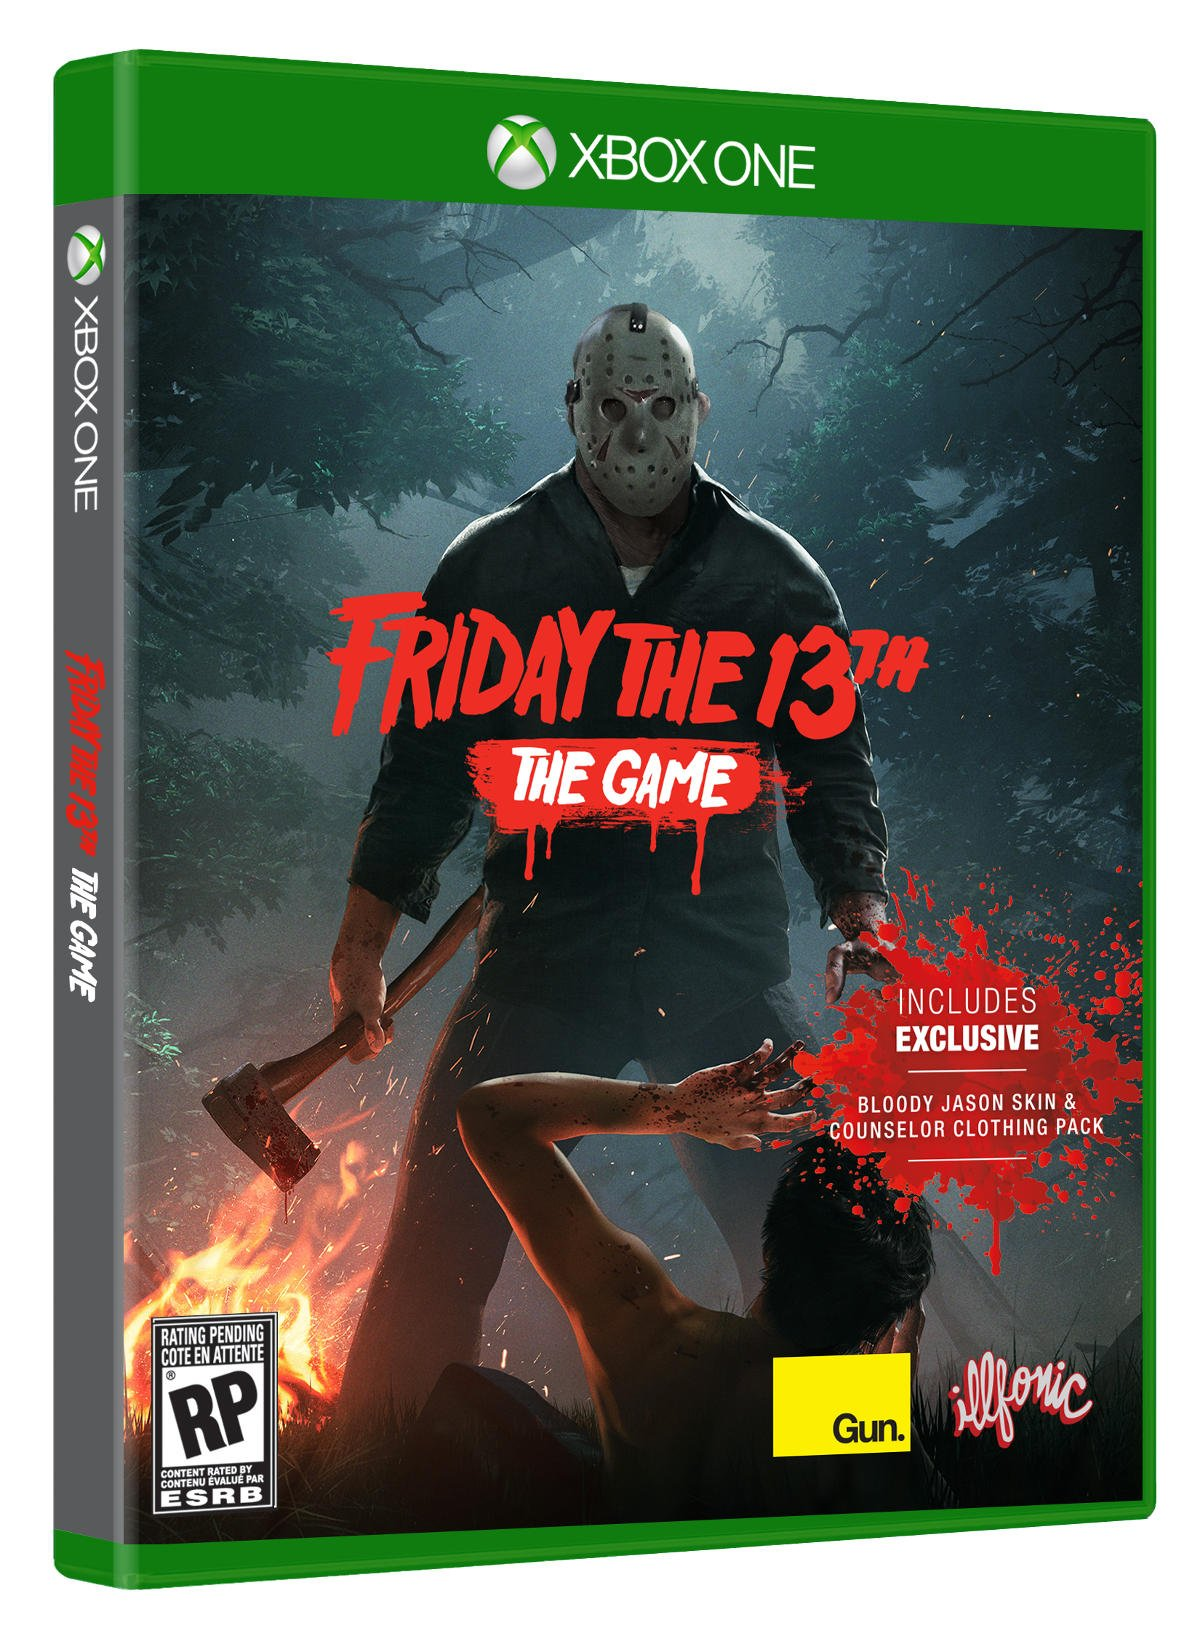 X Box 1 Games : Friday the th game physical edition to be released